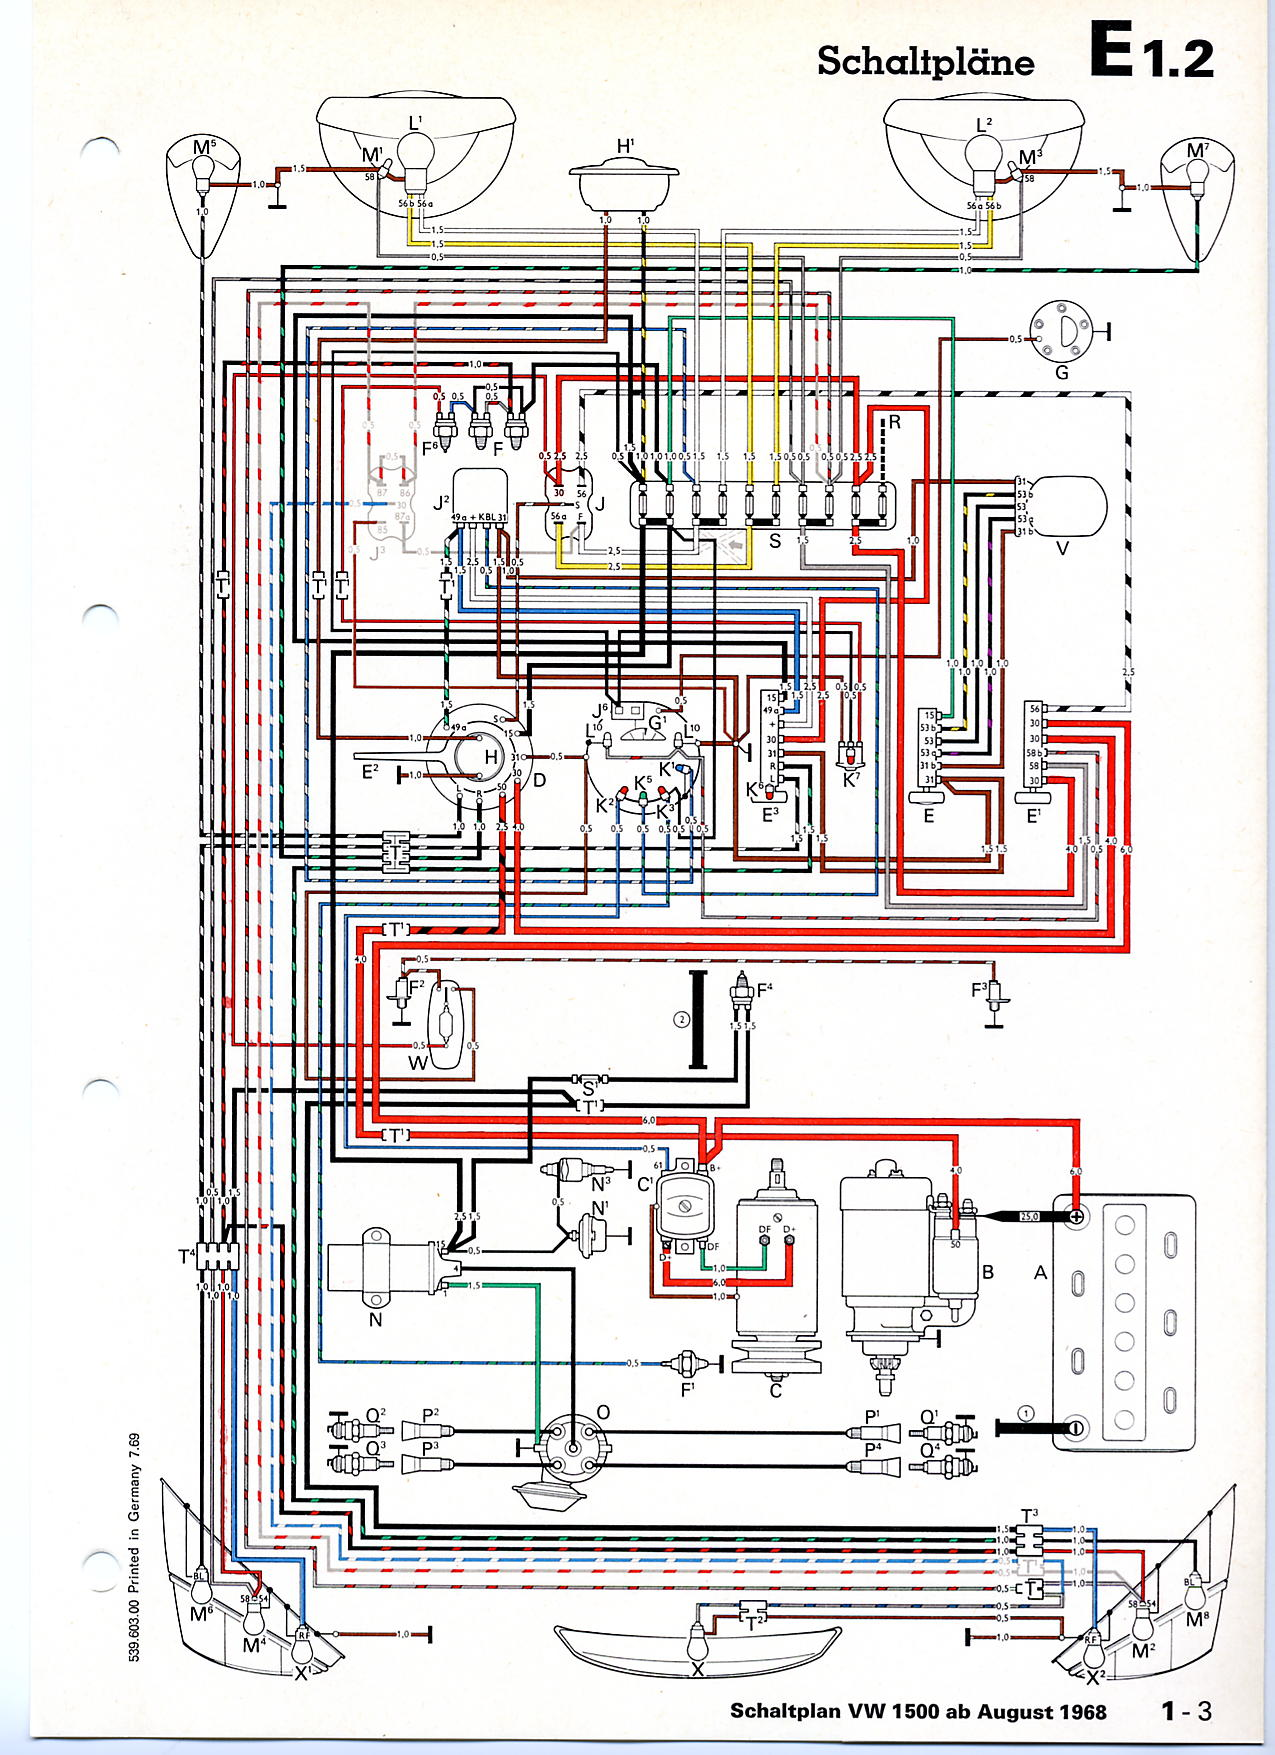 Wiring diagram jupiter z k grayengineeringeducation www wiring diagram jupiter z k grayengineeringeducation cheapraybanclubmaster Images